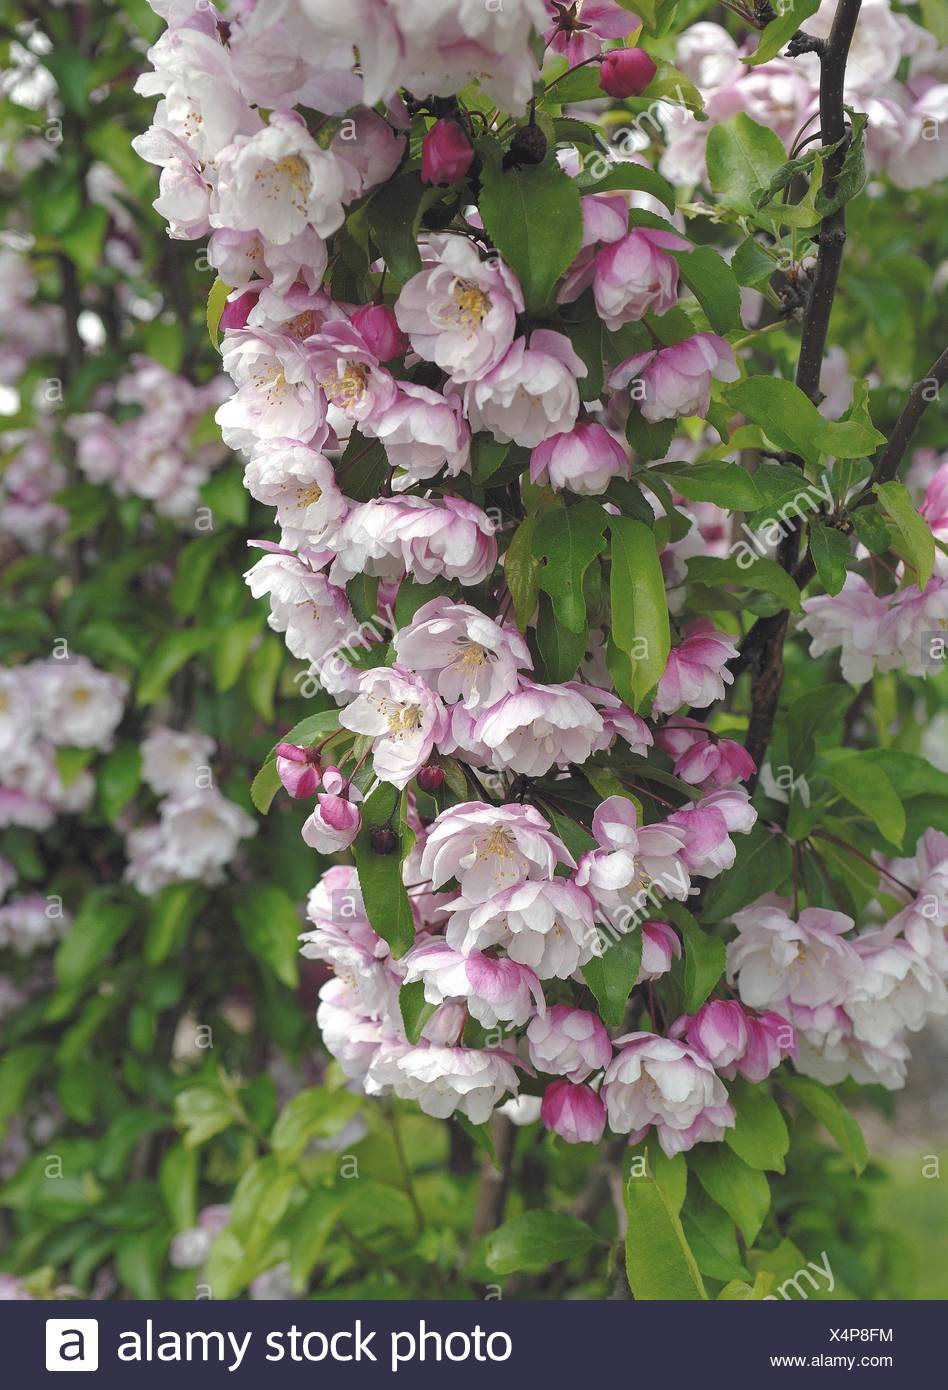 Crab apple (Malus 'Van Eseltine', Malus Van Eseltine), cultivar Van Eseltine, blooming - Stock Image